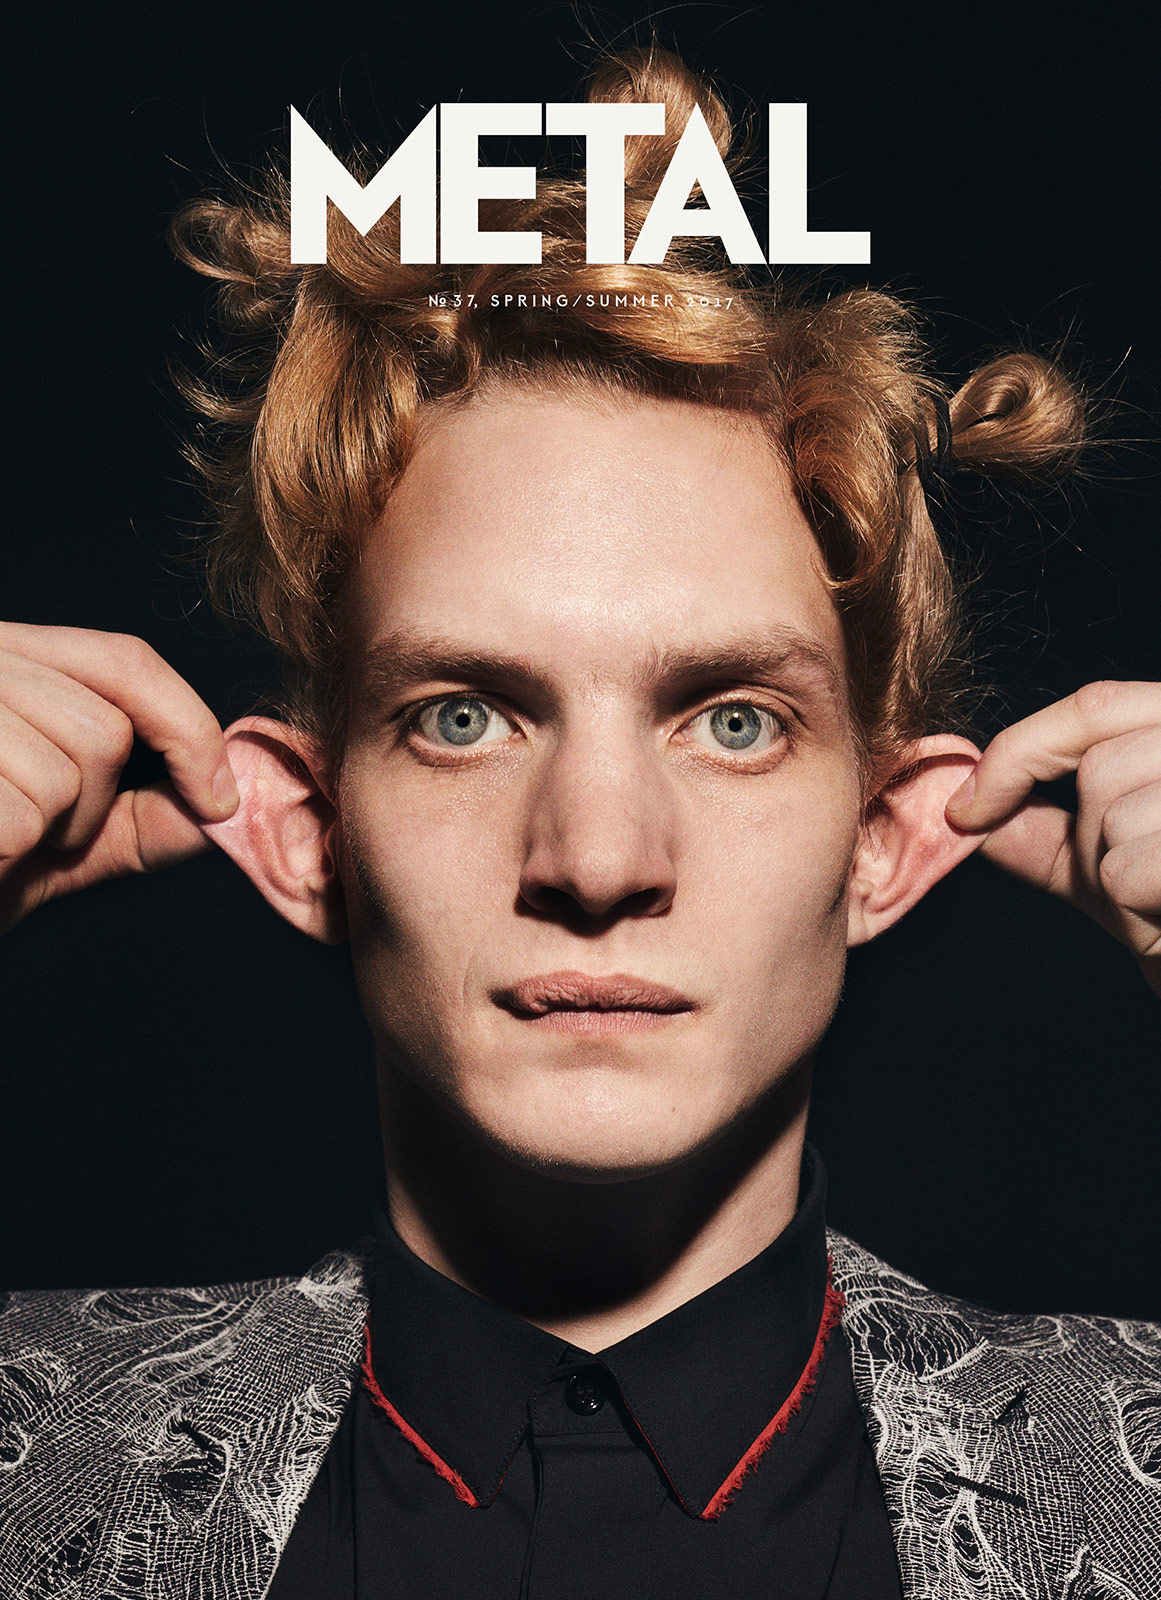 COVER 5 - Paul Boche photographed by Jana Gerberding wearing Dior Homme.